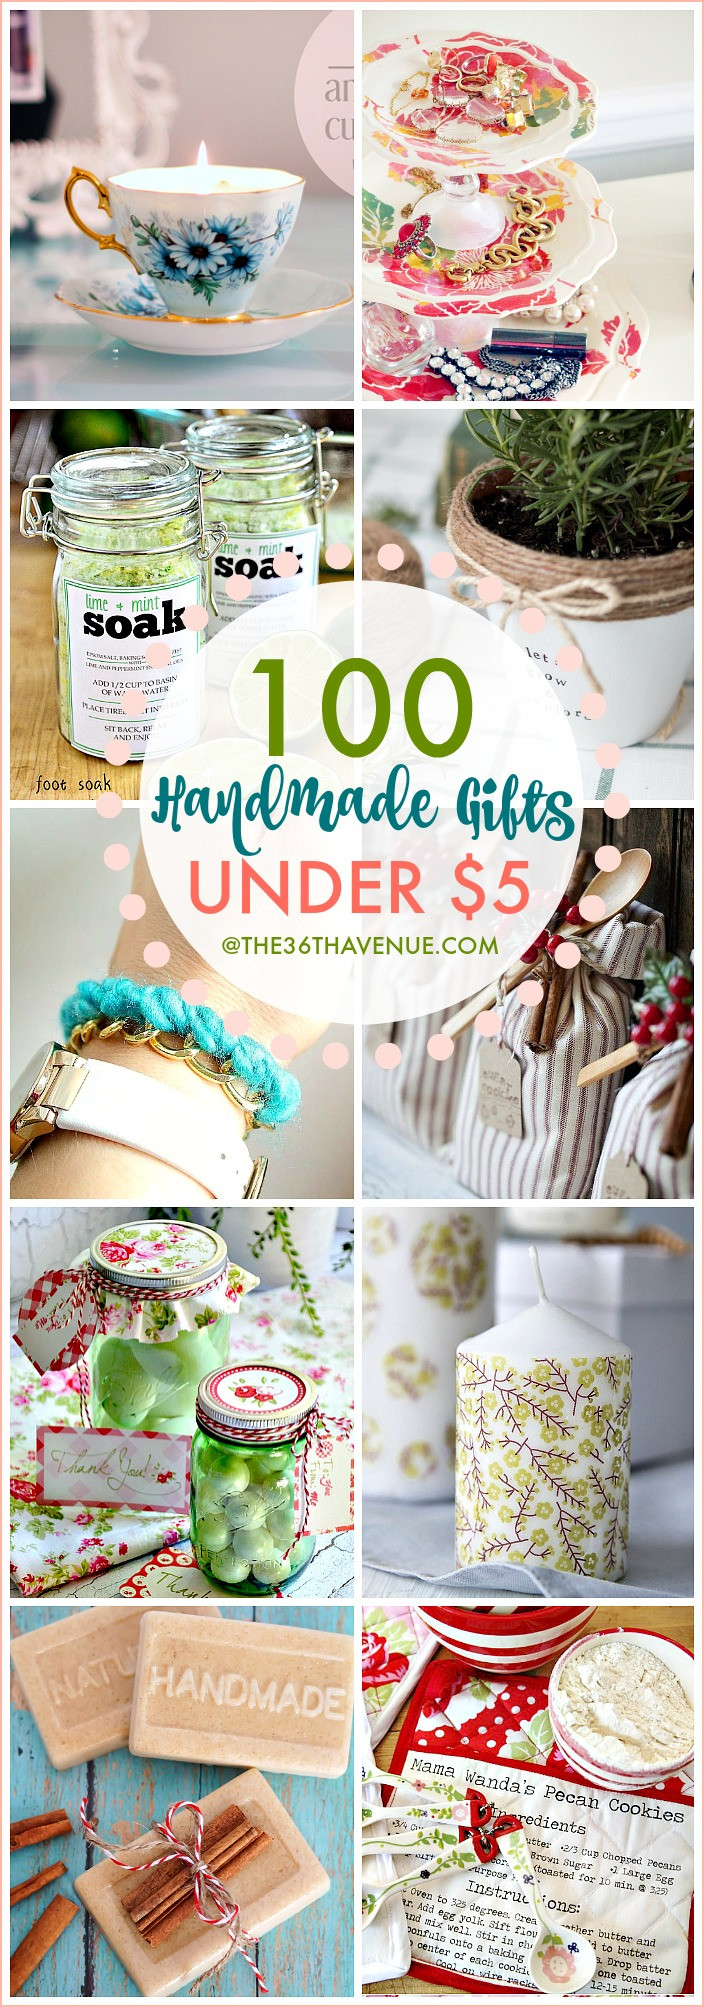 Best ideas about Easy Homemade Gift Ideas . Save or Pin 100 Handmade Gifts Under Five Dollars The 36th AVENUE Now.